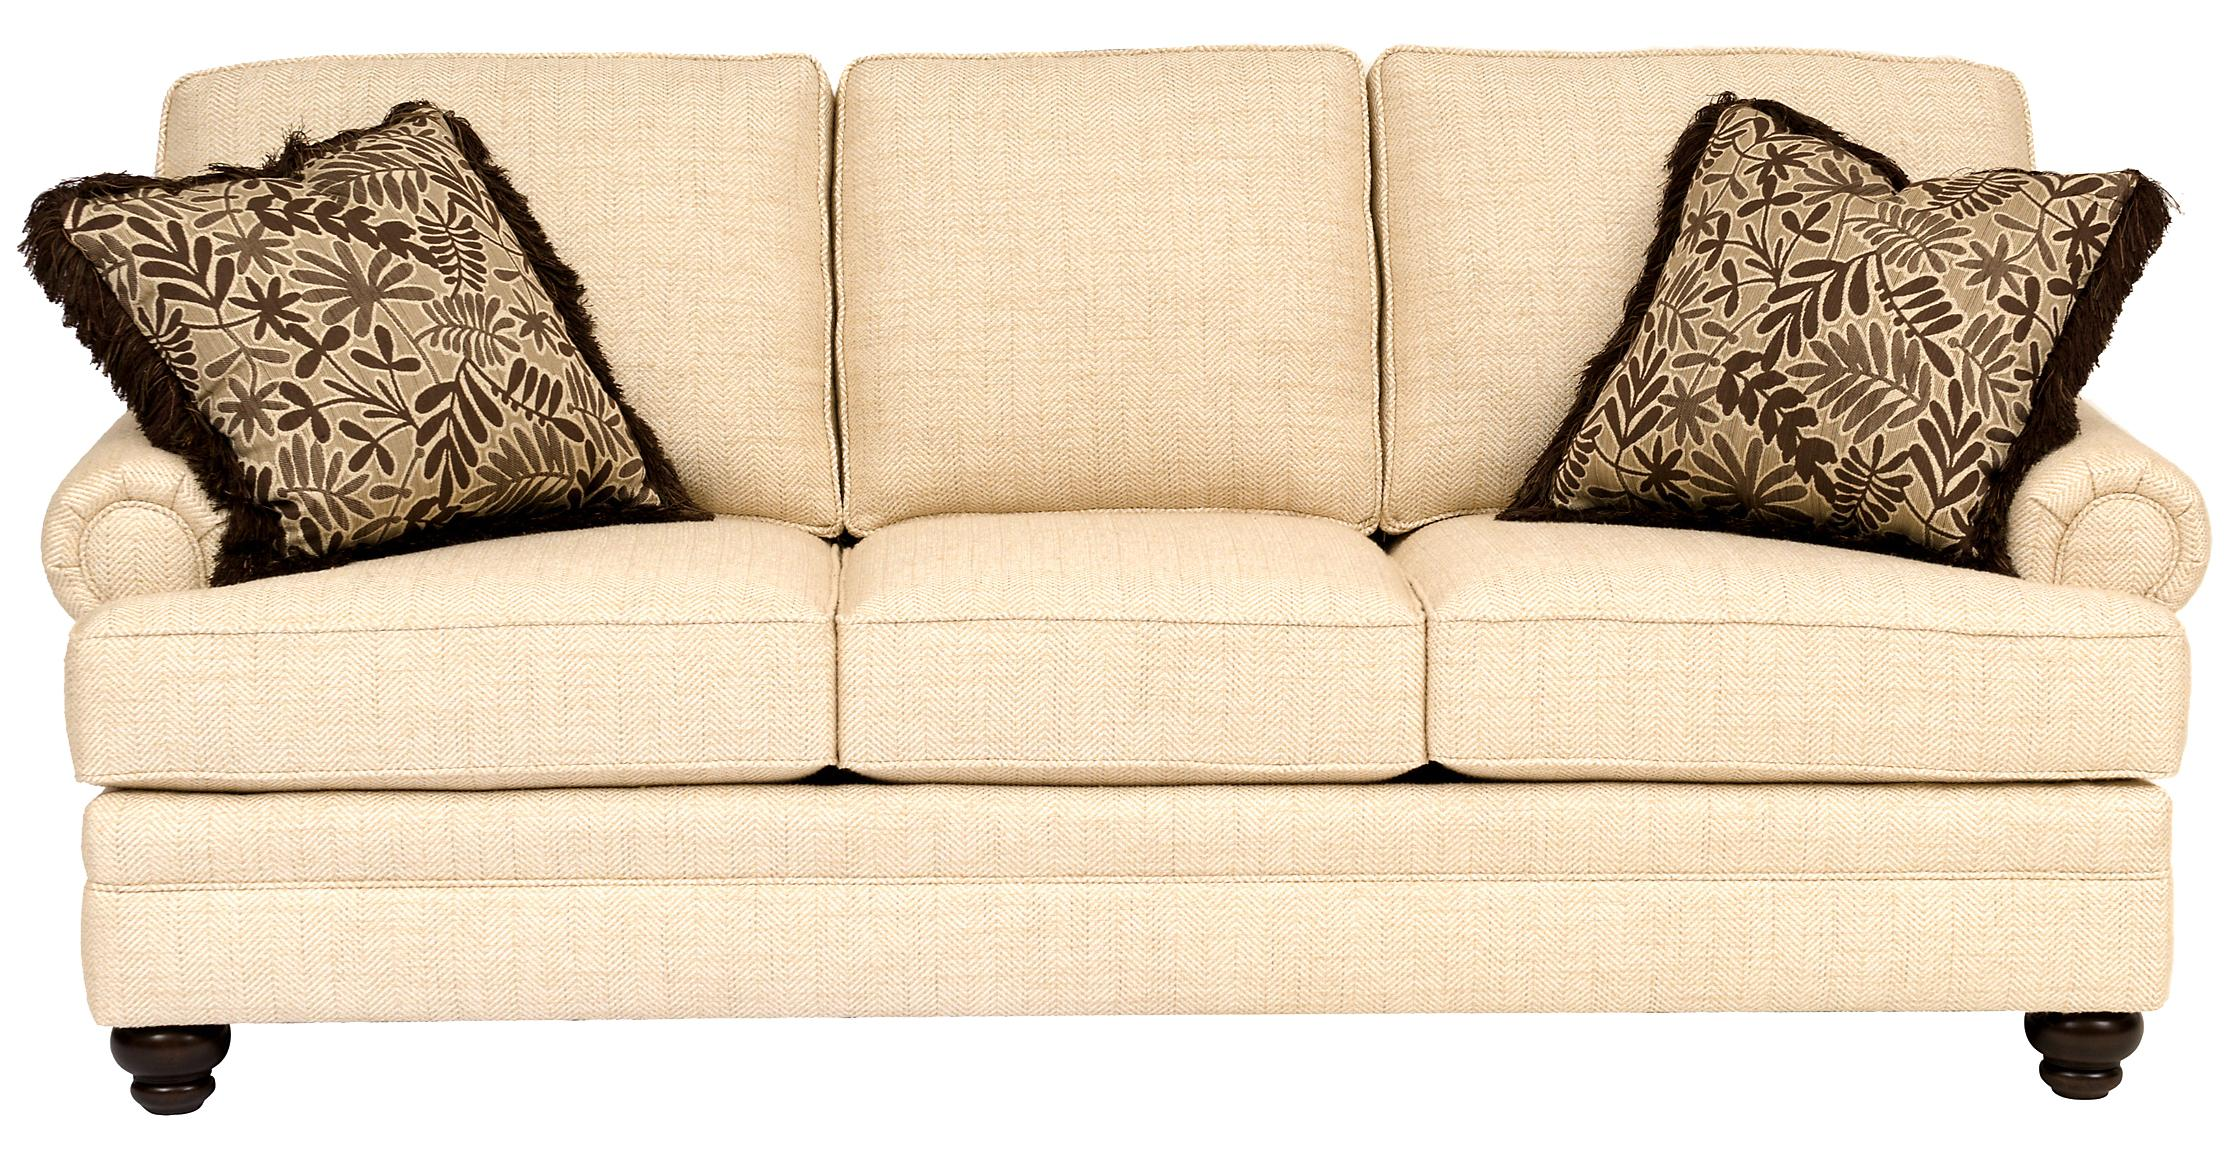 build your own sofa online telebrands 5 in 1 bed reviews smith brothers 5000 series with